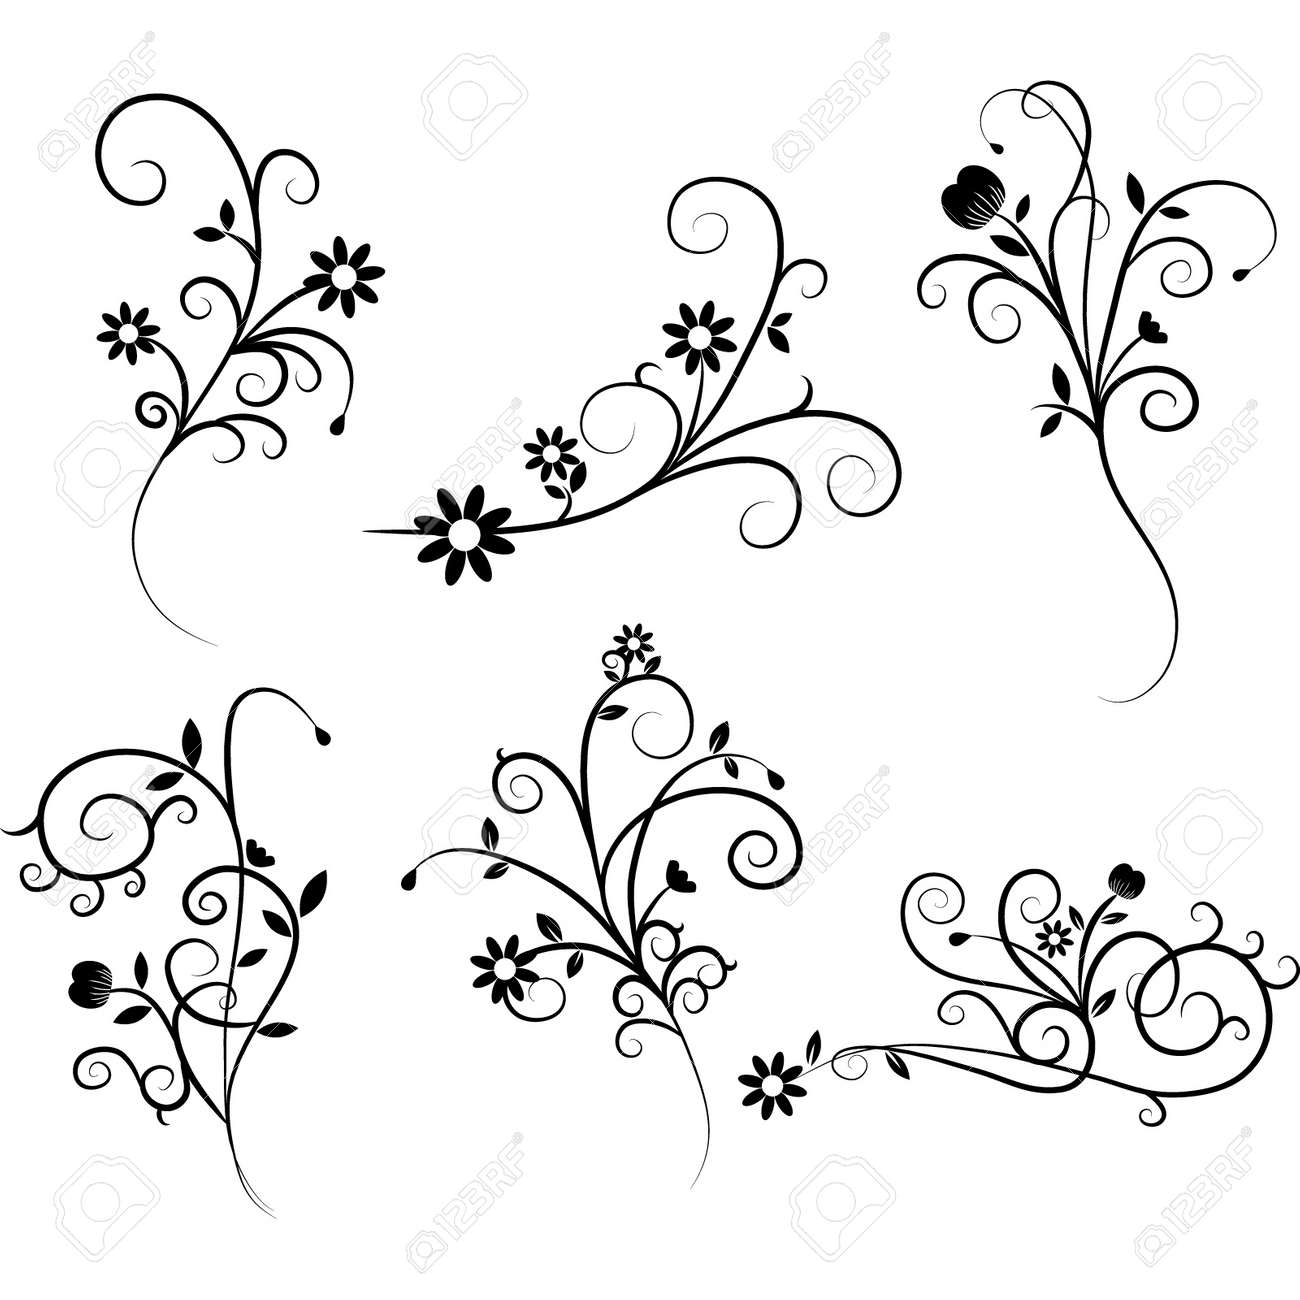 flower flourish swirl set royalty free cliparts vectors and stock rh 123rf com Swirl Heart Clip Art Decorative Swirls Clip Art